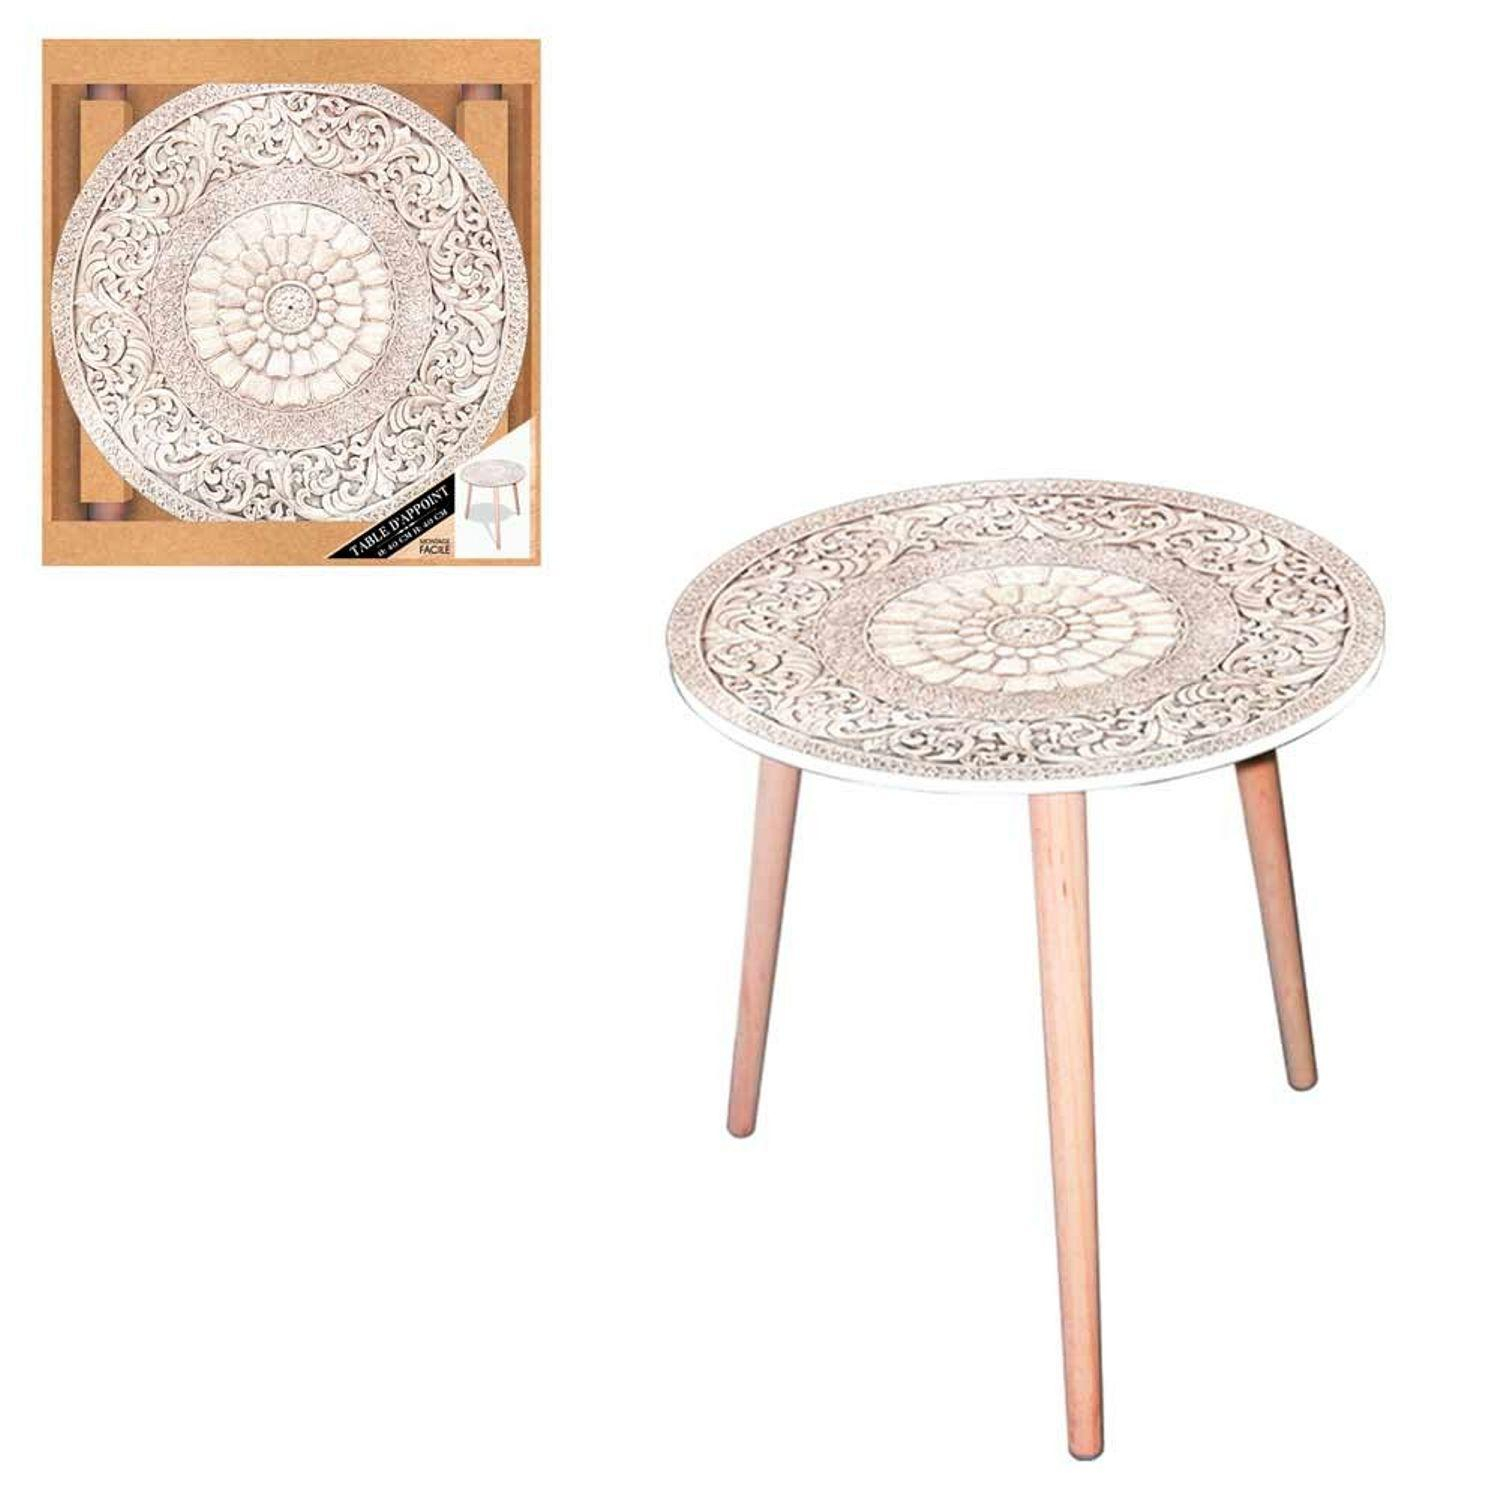 Table d'Appoint - Mandala